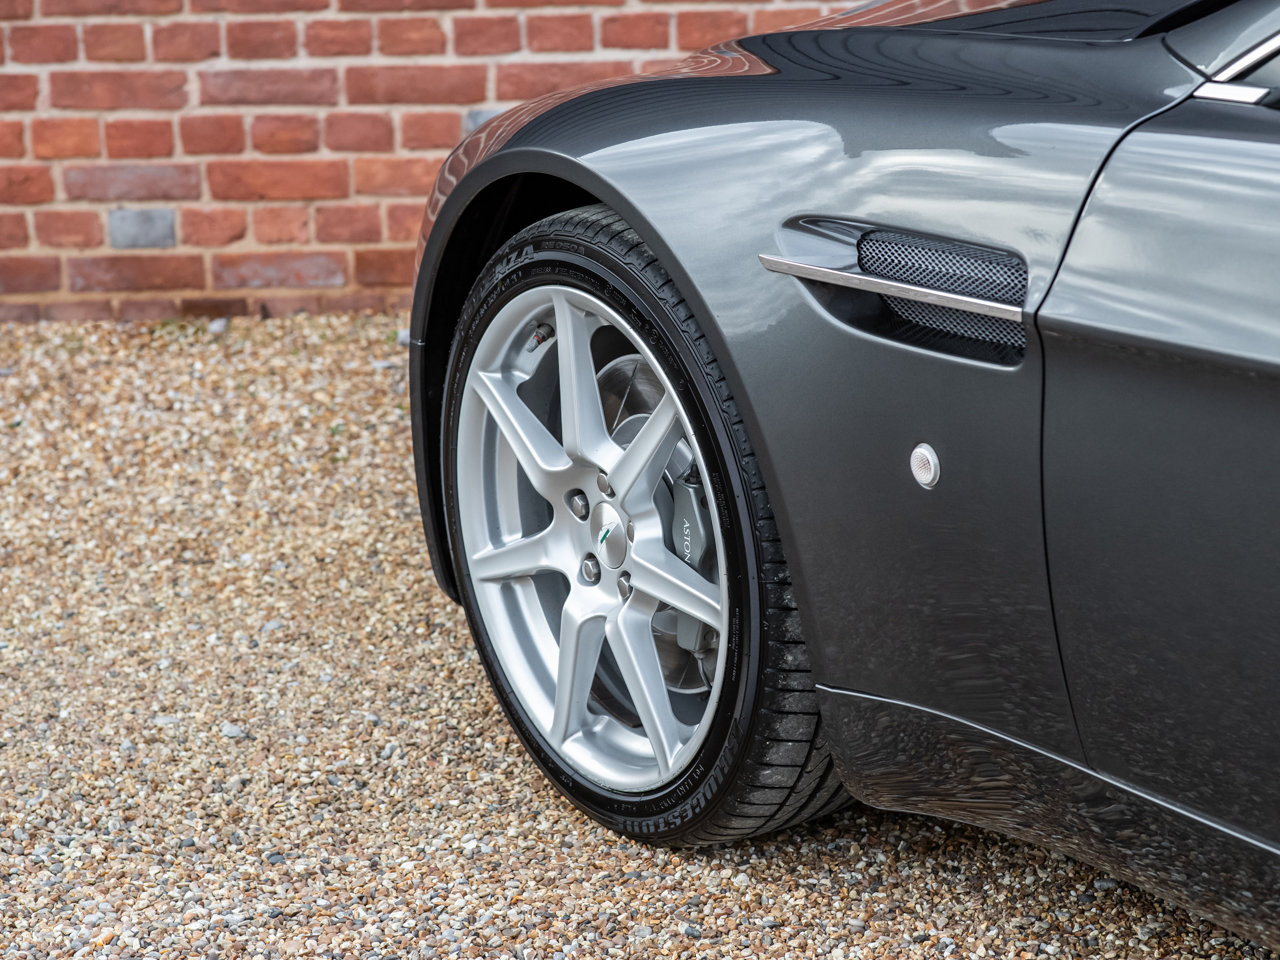 2008 Aston Martin V8 Vantage - Manual For Sale (picture 11 of 12)